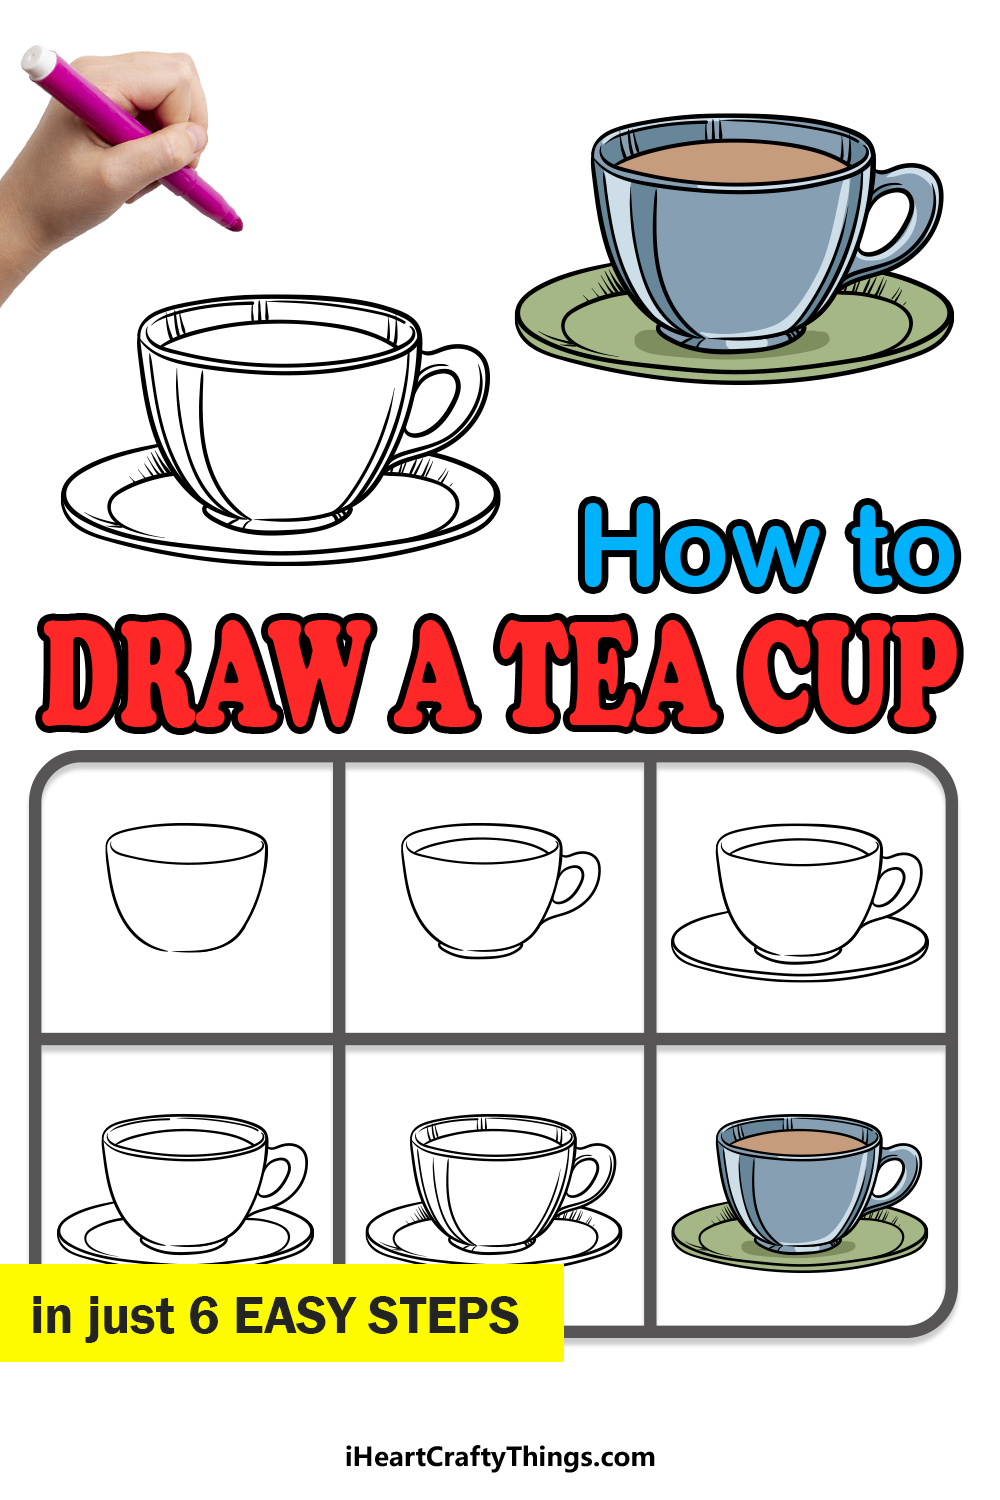 how to draw a tea cup in 6 easy steps